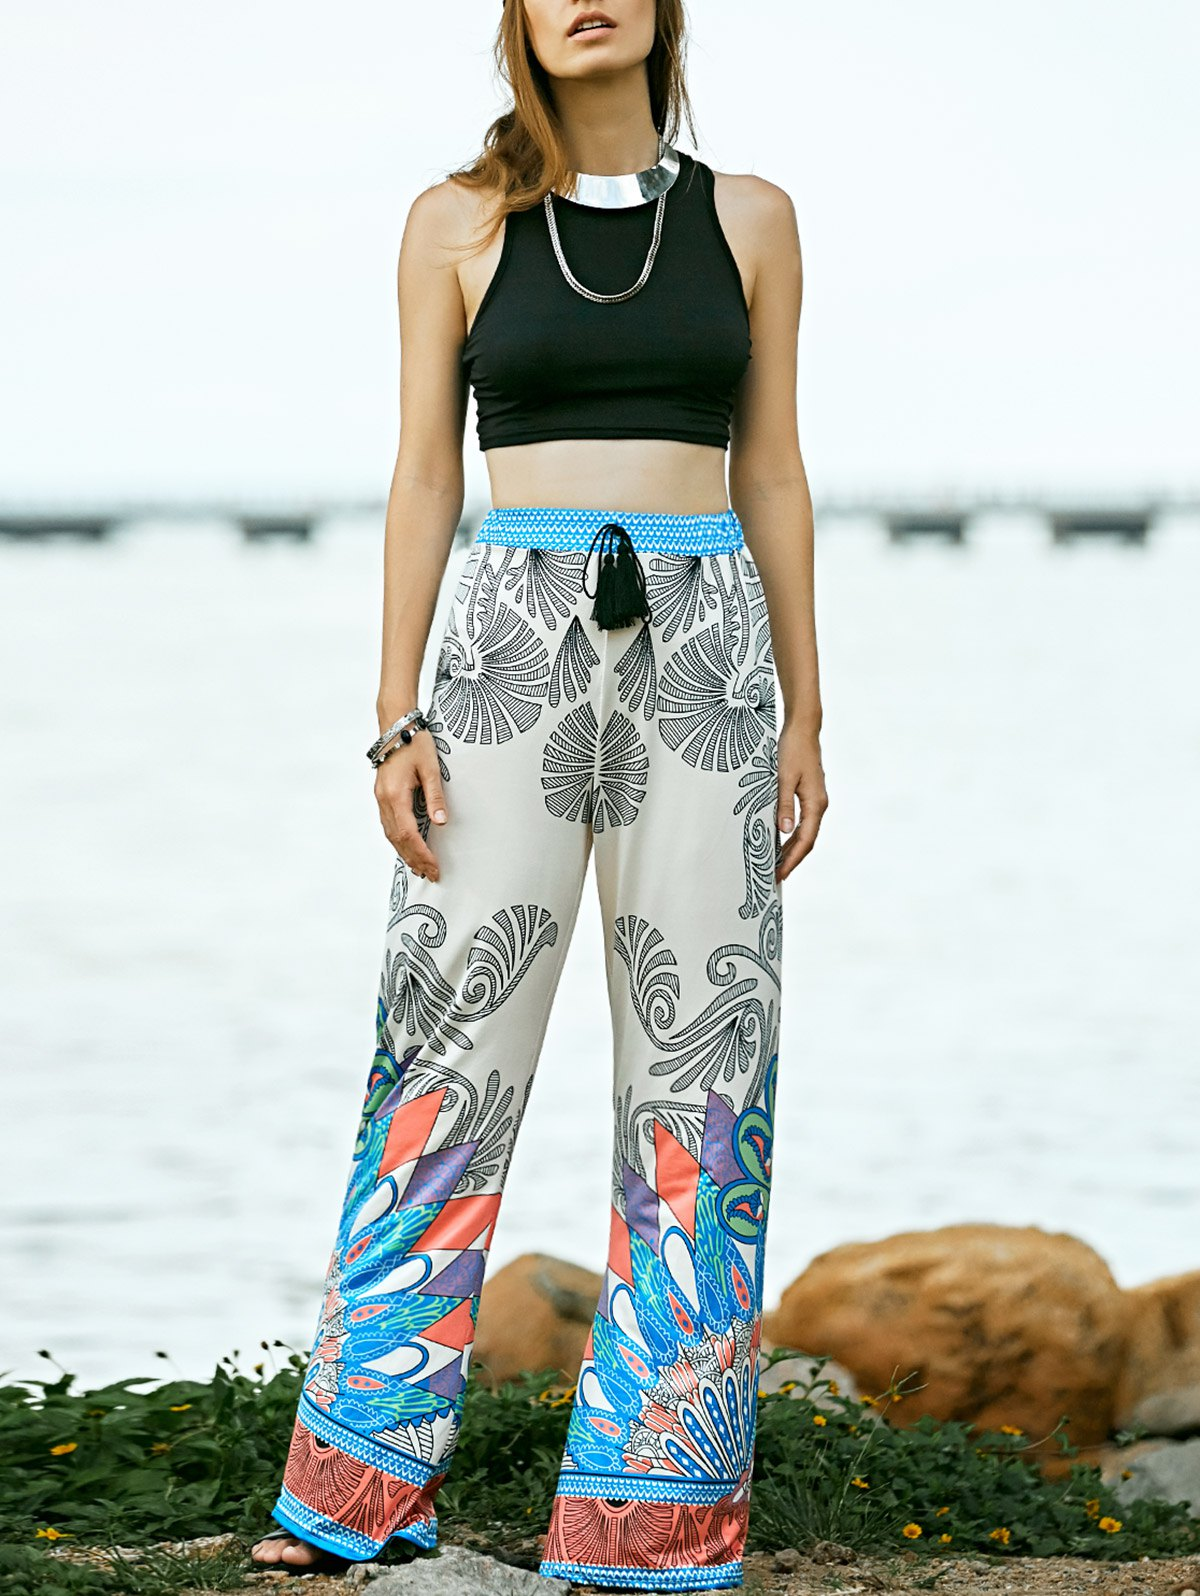 Black Round Neck Tank Top and Printed High Waist Pants